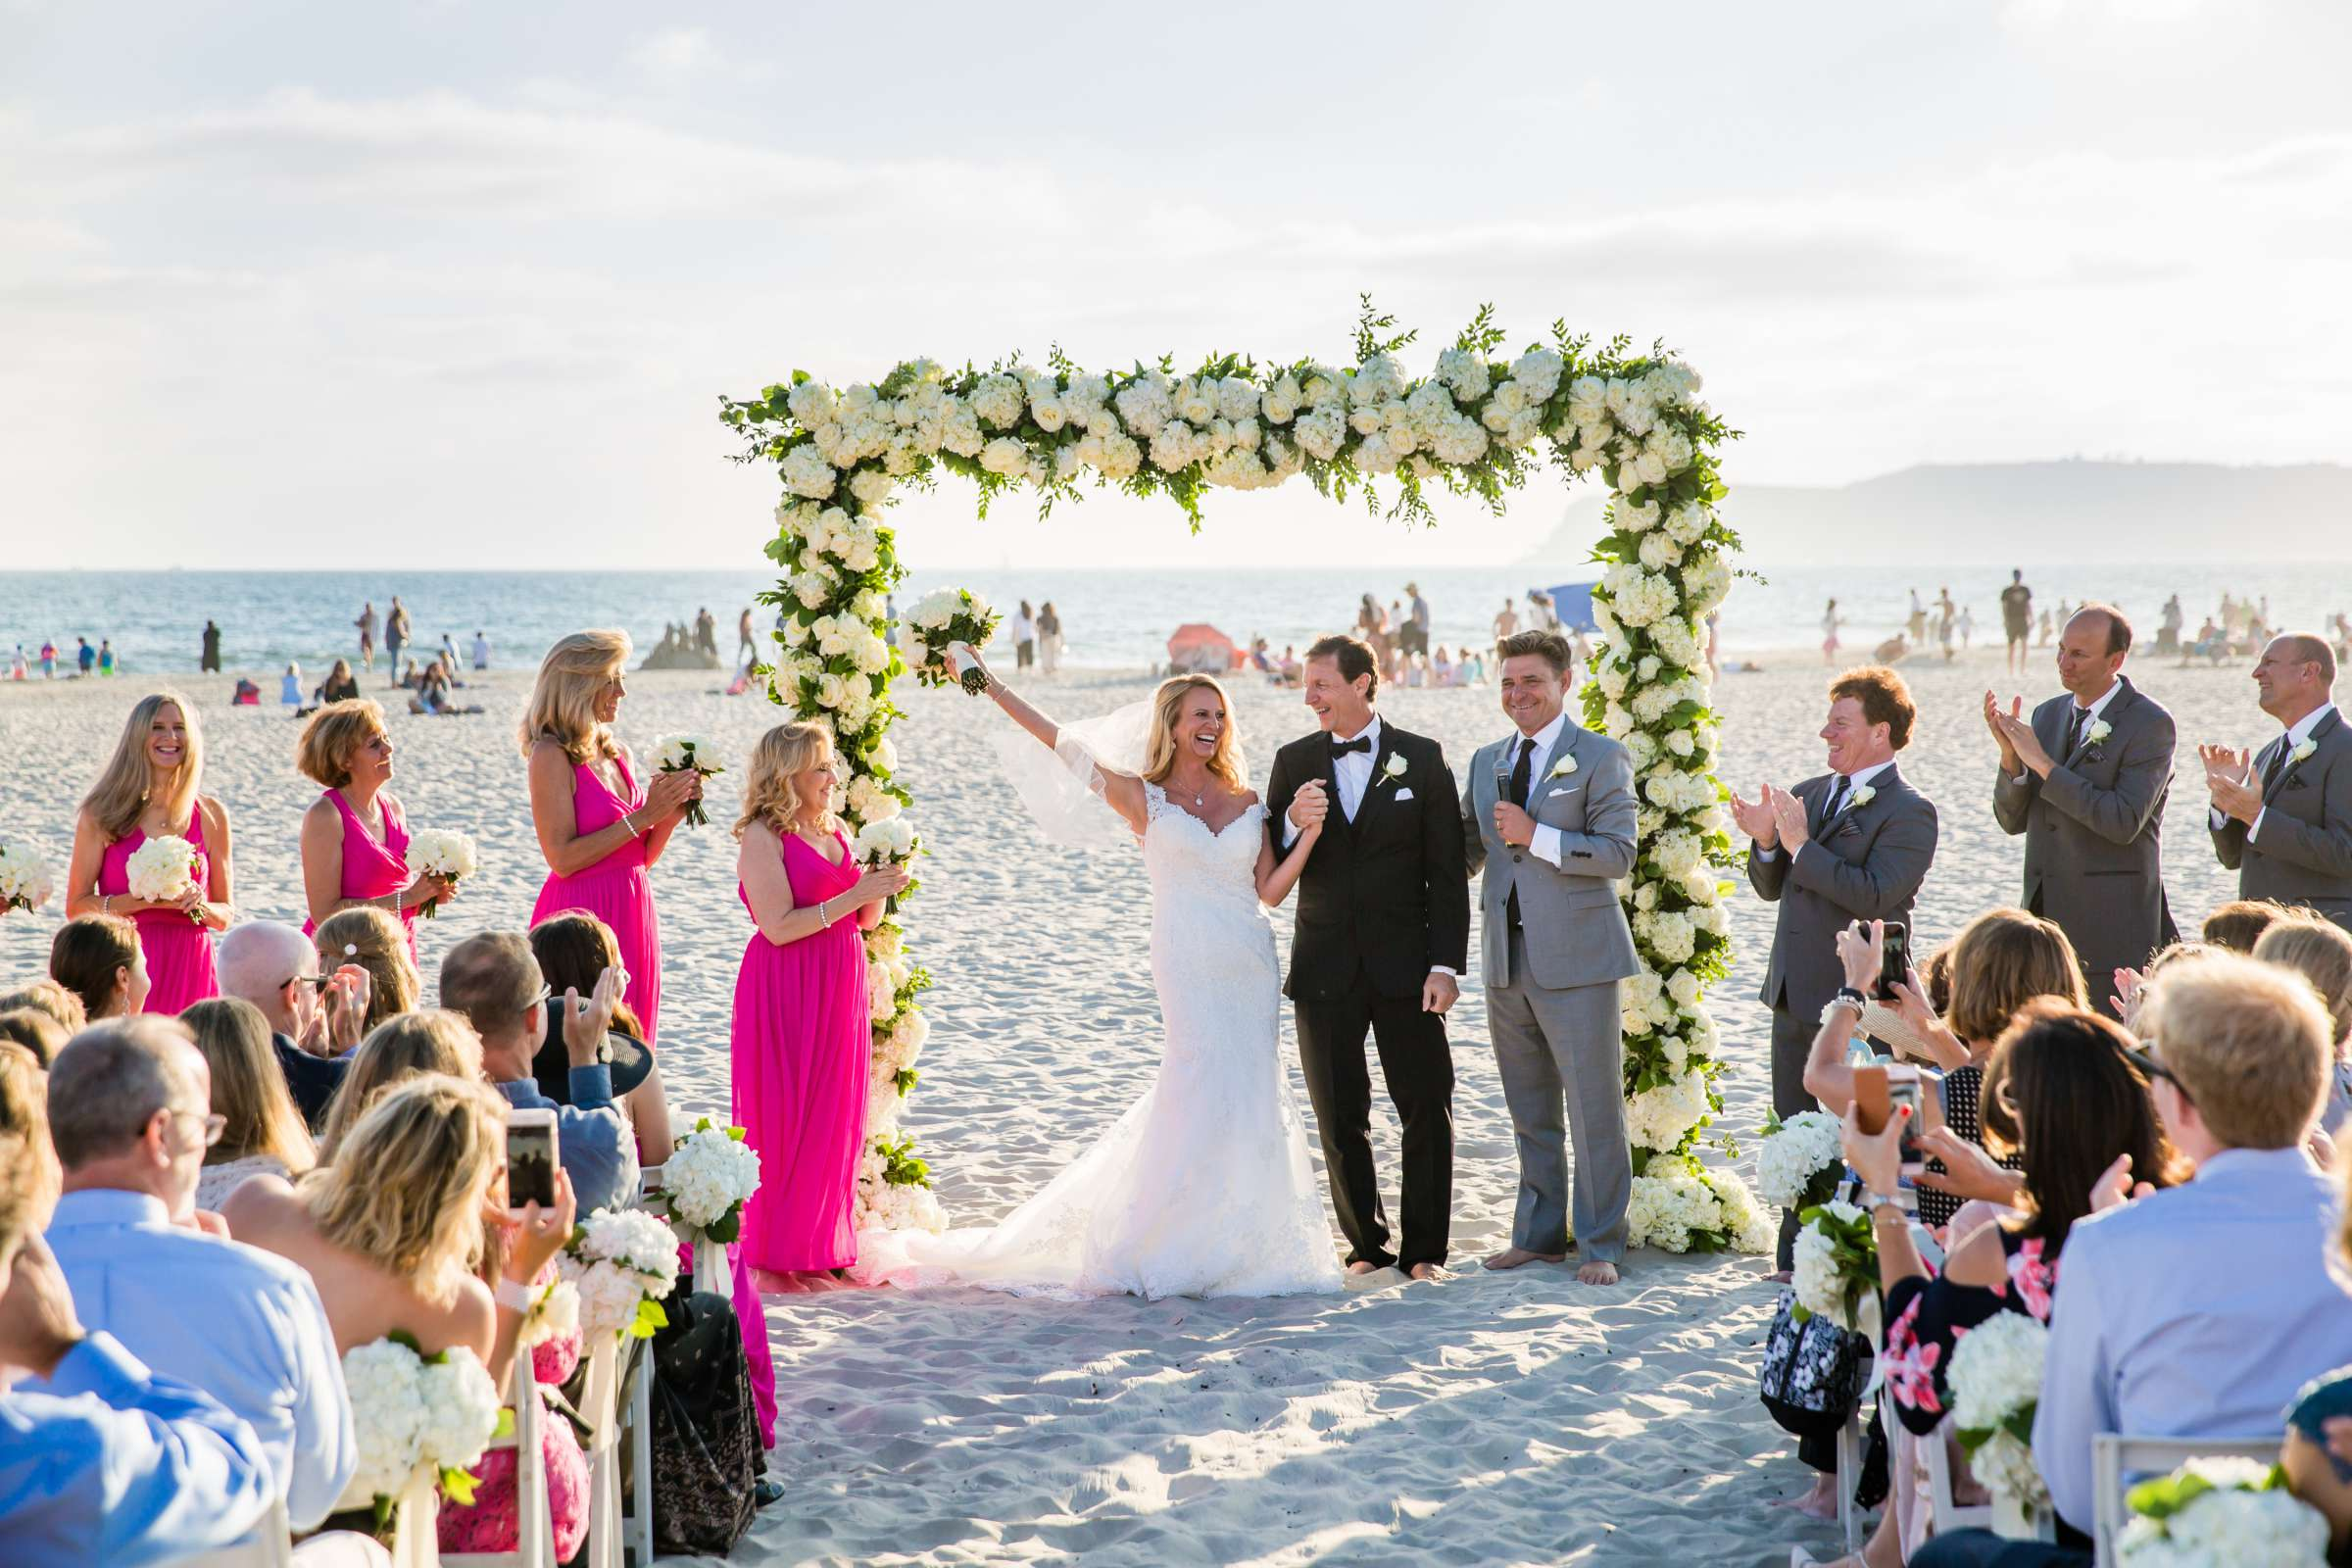 Hotel Del Coronado Wedding coordinated by Creative Affairs Inc, Diane and Paul Wedding Photo #66 by True Photography